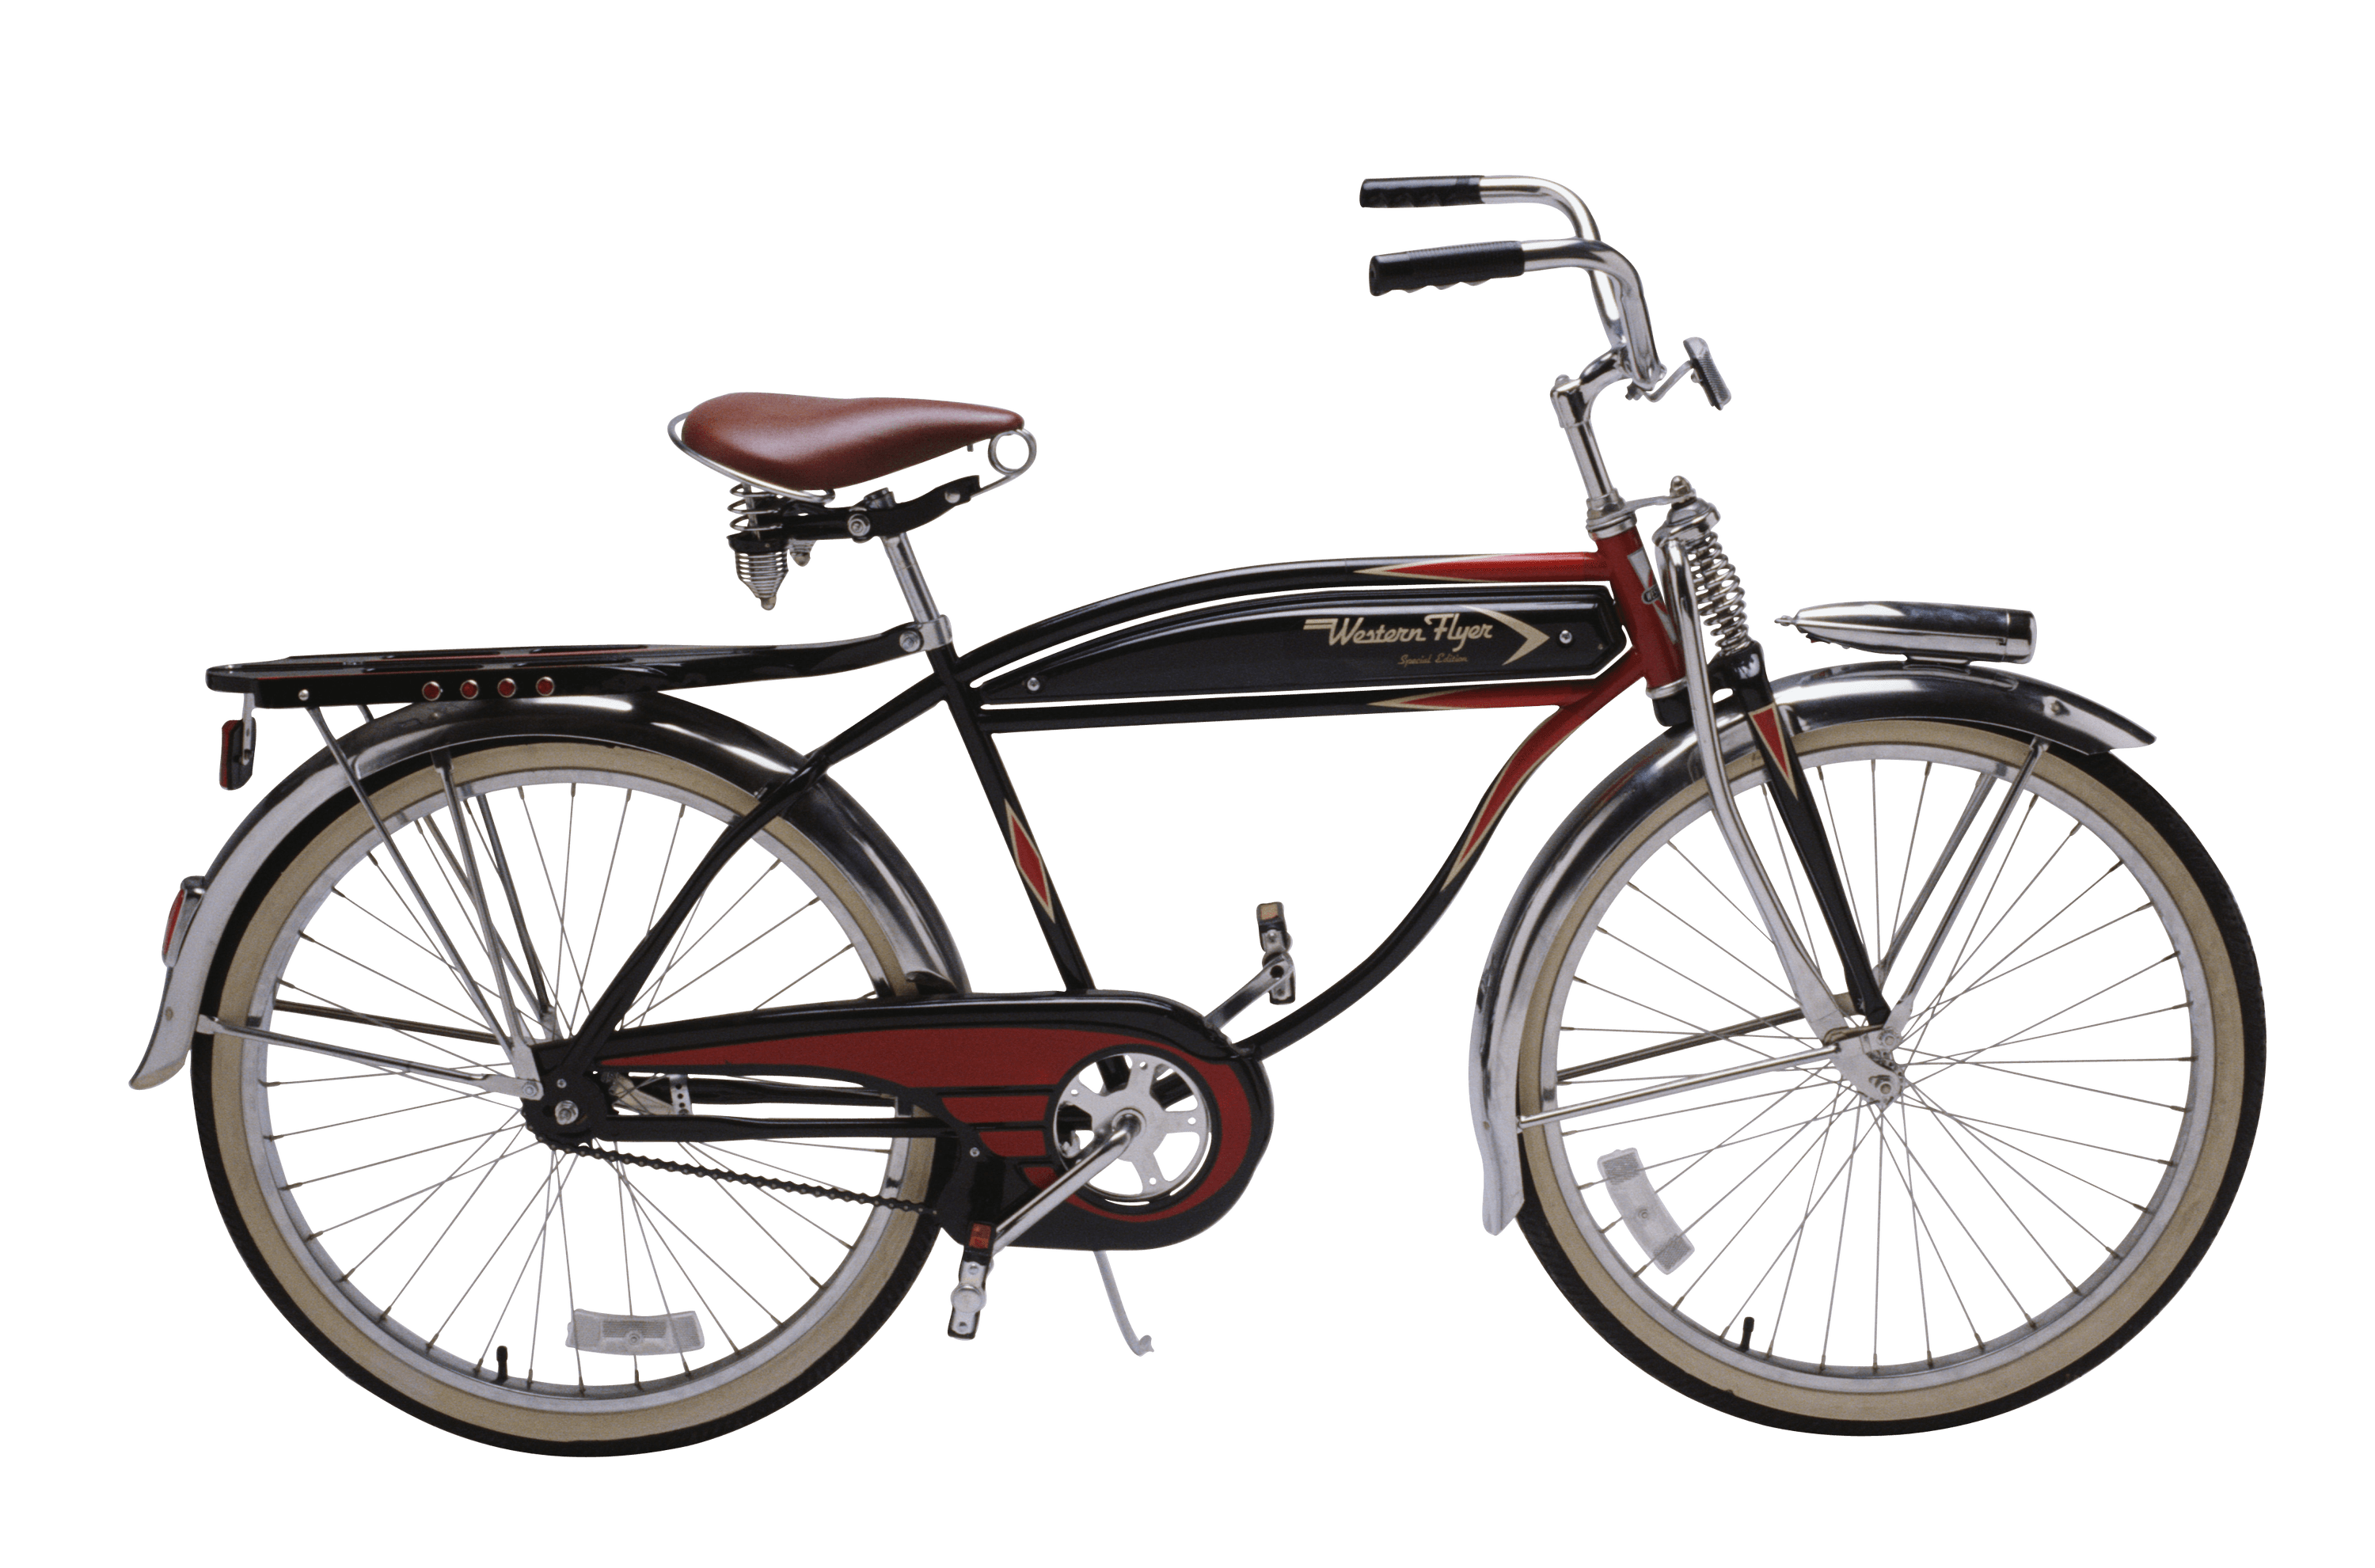 Bicycle vintage transparent png. Cycle clipart antique bike jpg free stock